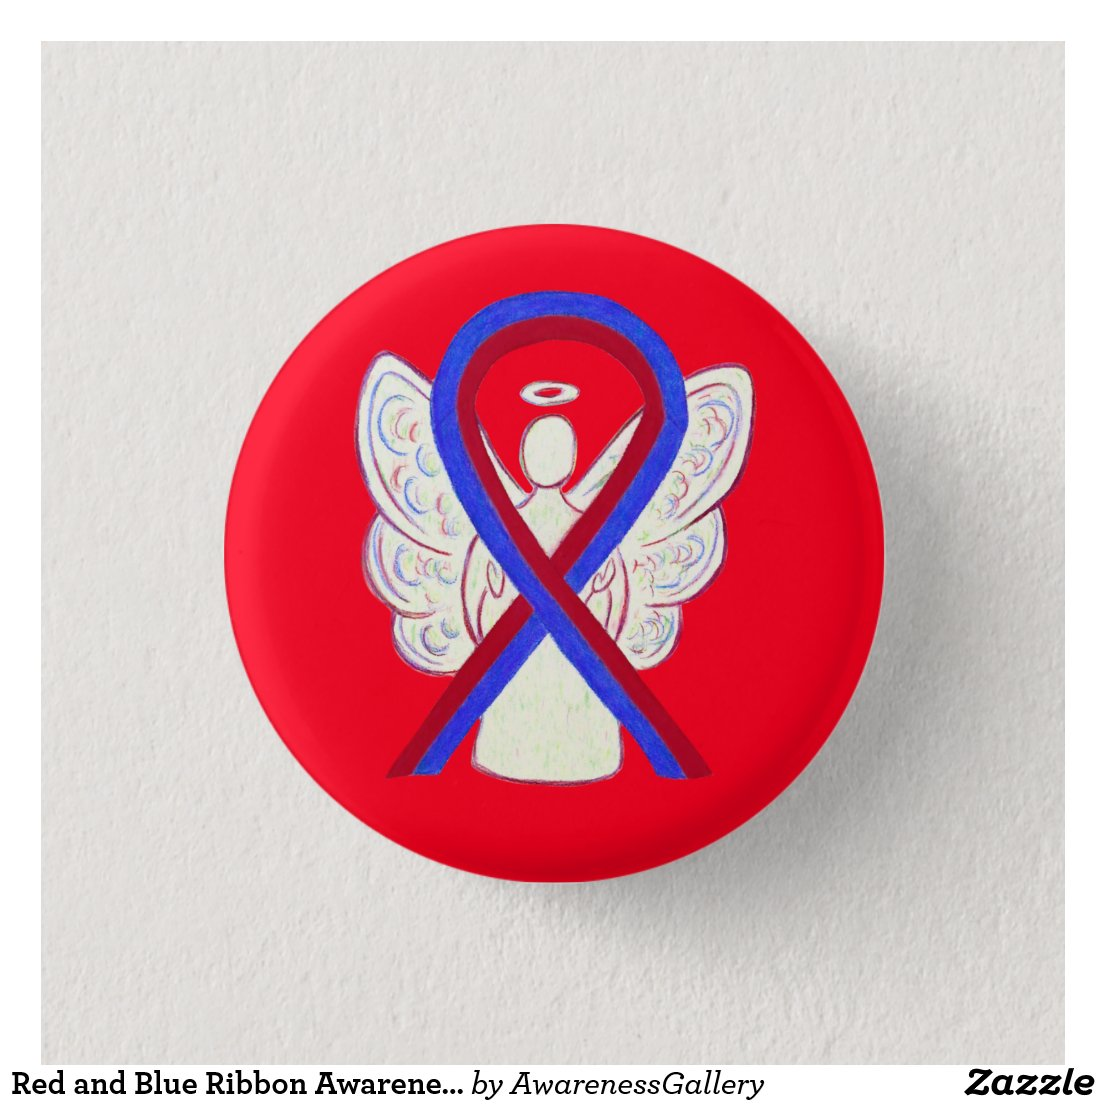 Red and Blue Ribbon Awareness Angel Button Pins